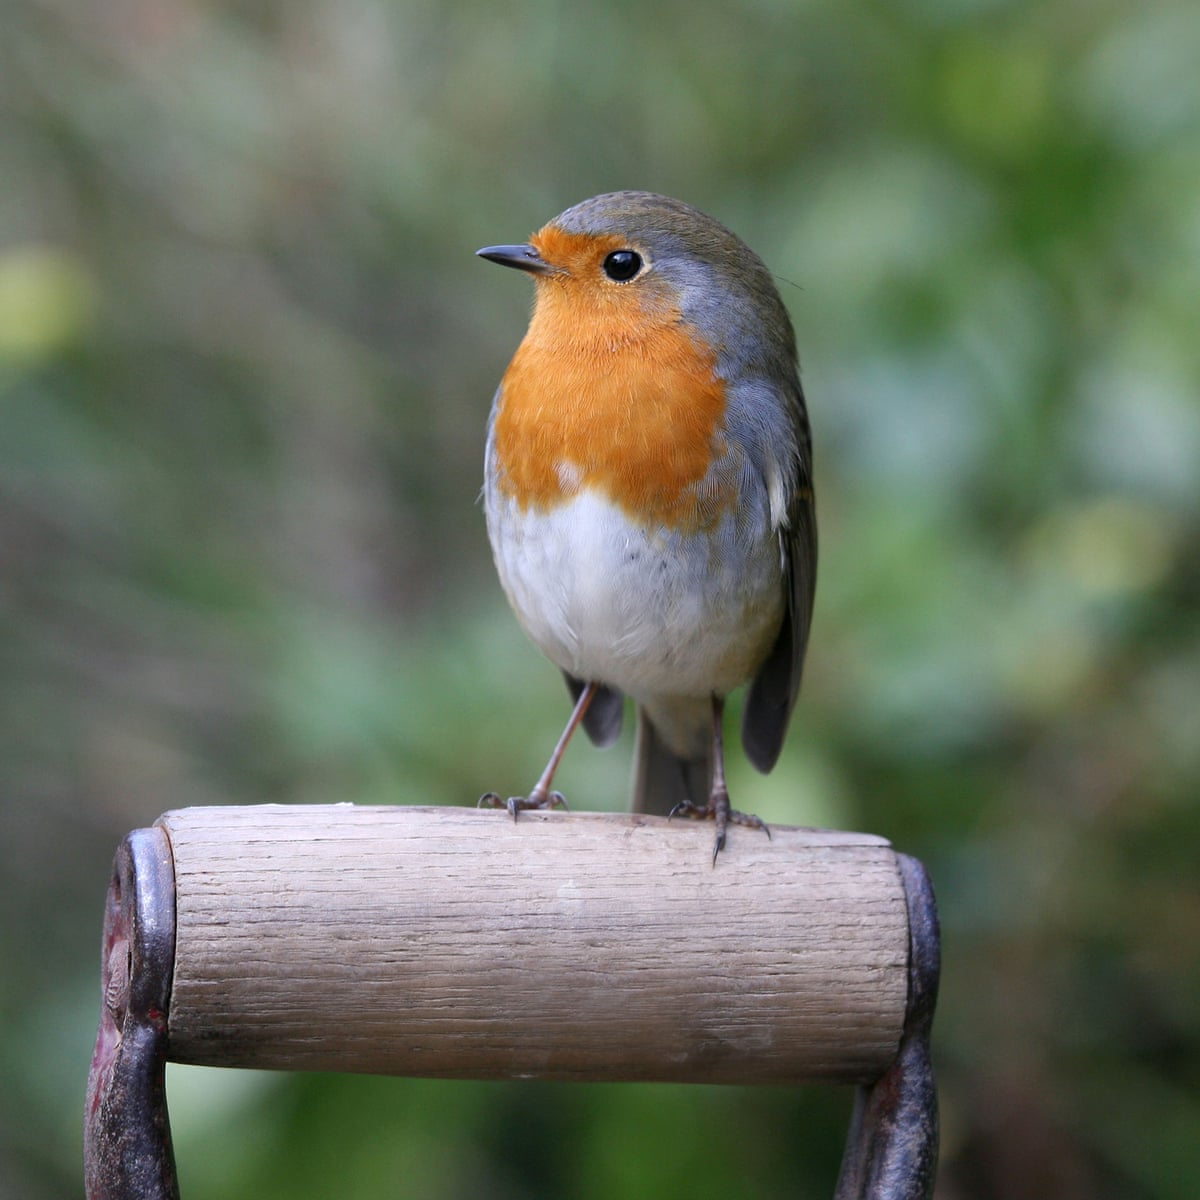 Birdwatch The Robin Is One Of Our Most Familiar Birds Yet It Can Still Surprise Us Environment The Guardian